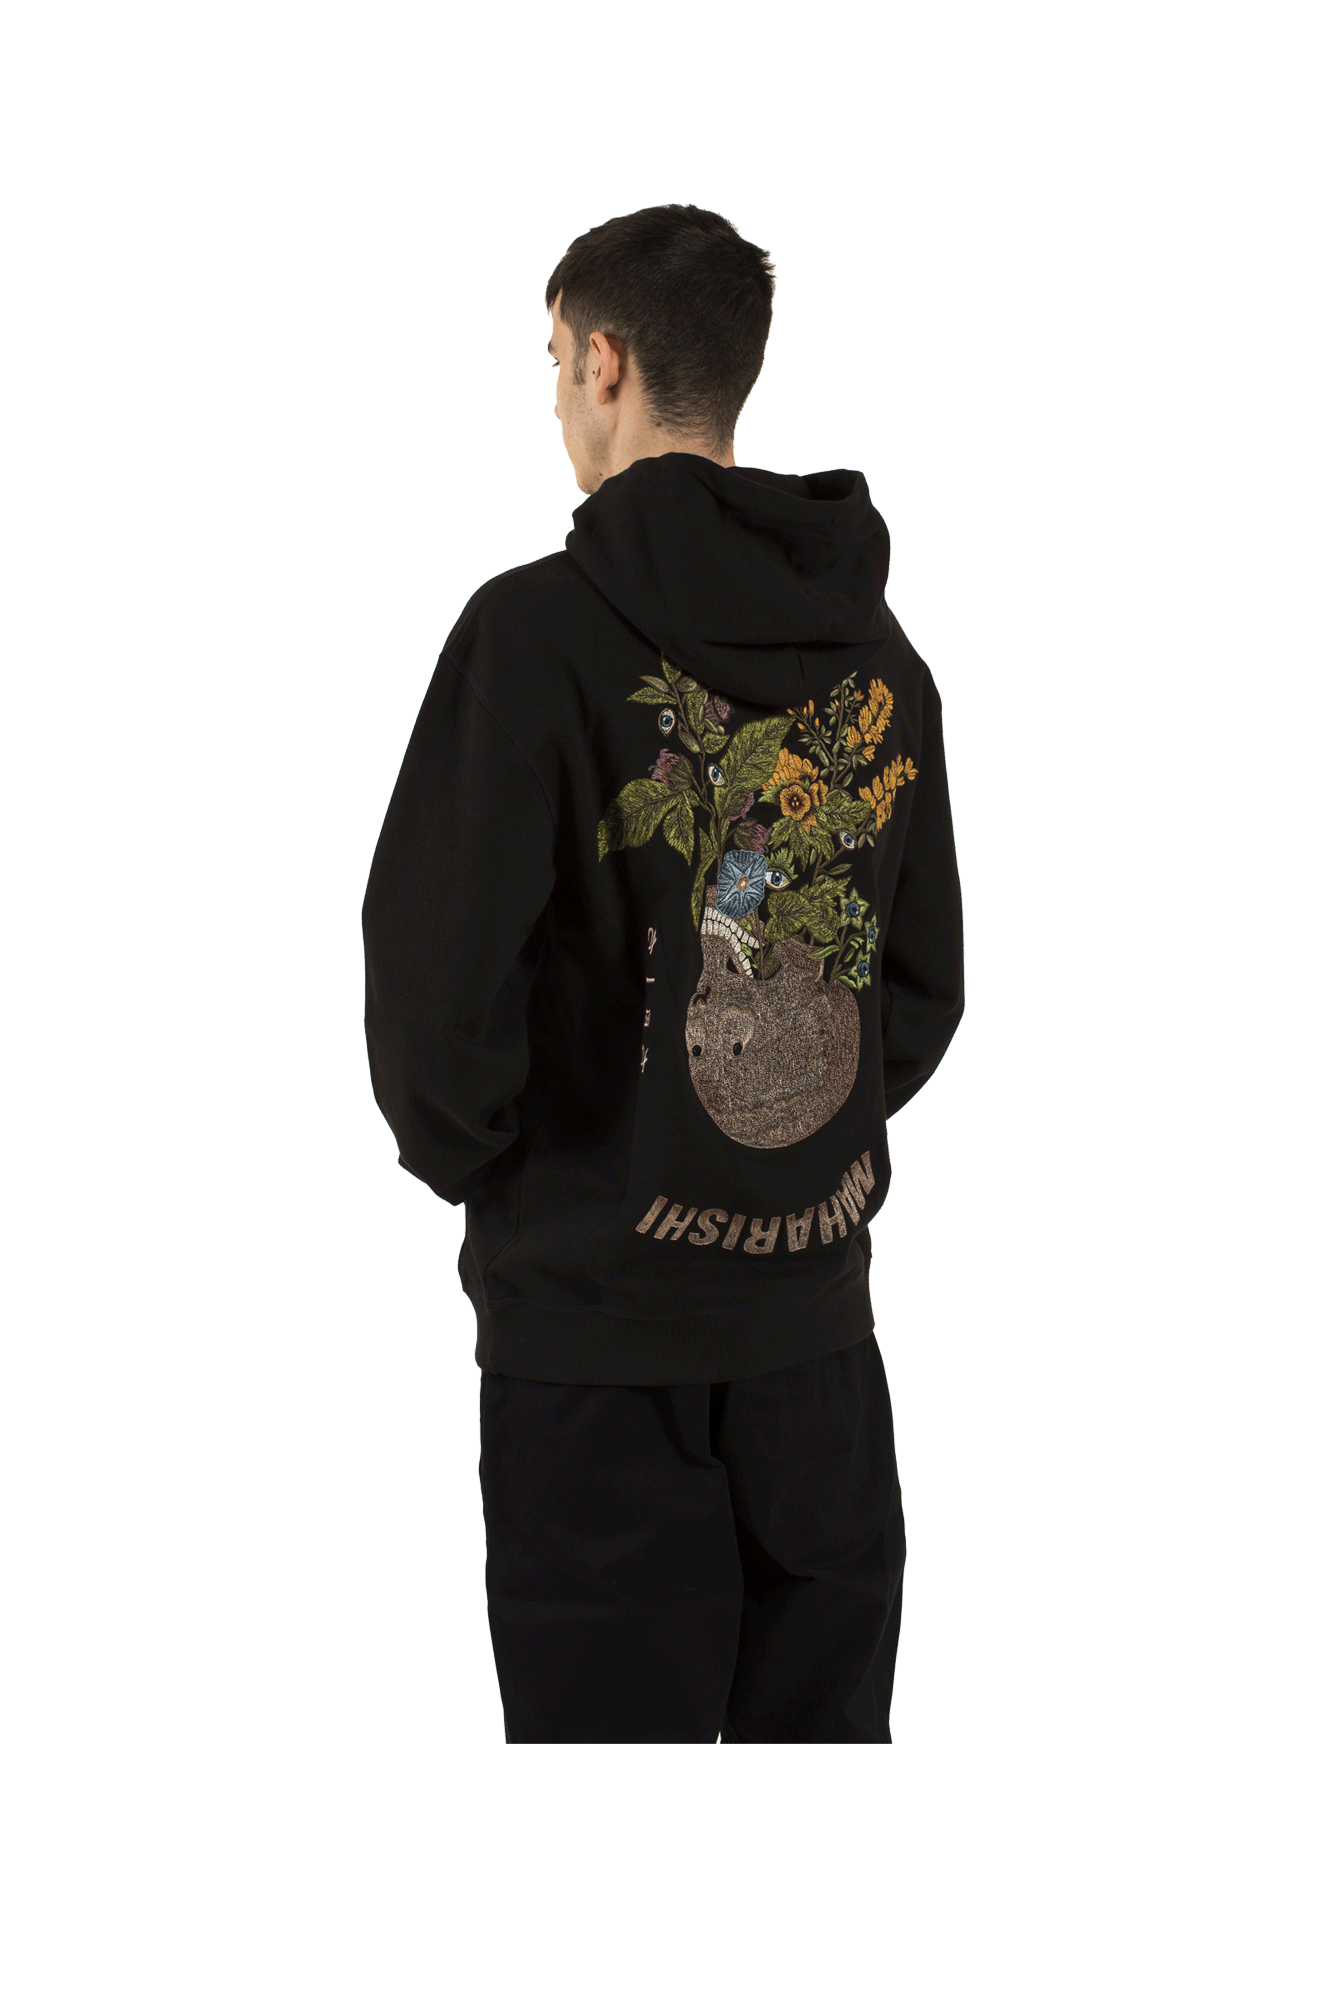 Pax Psychotria Hooded Sweat Black